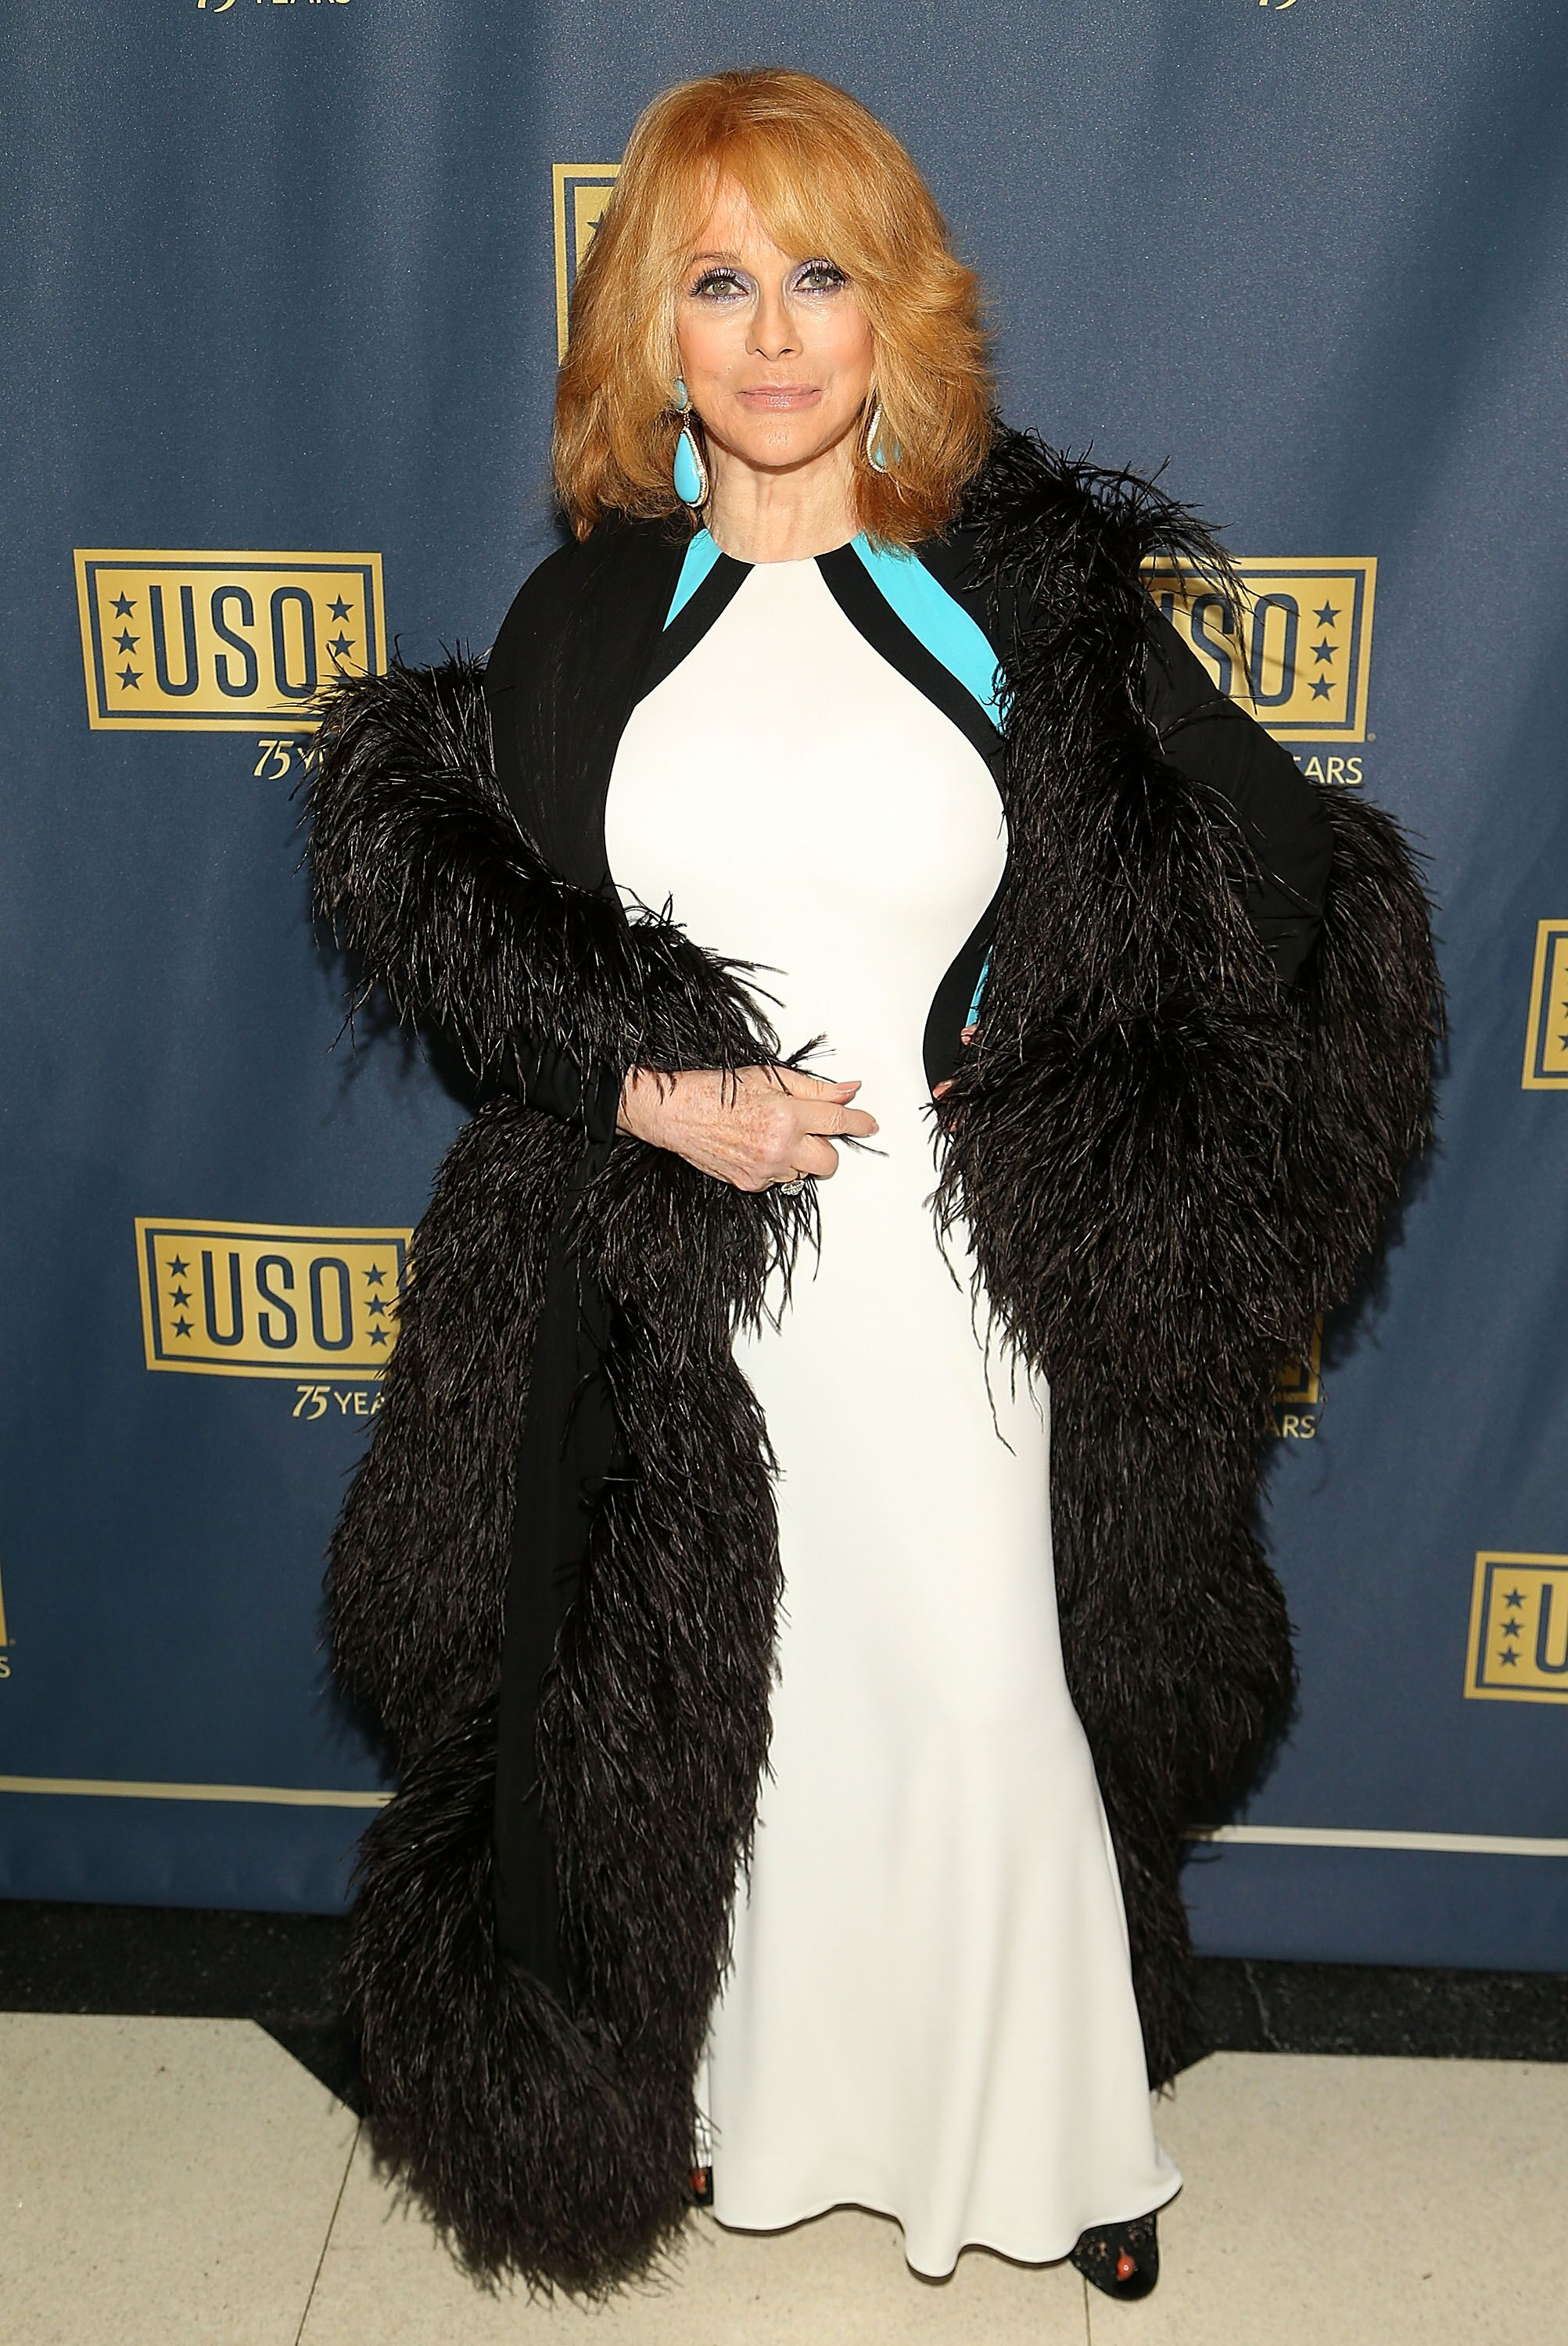 Ann-Margret attends the 2016 USO Gala. | Source: Getty Images